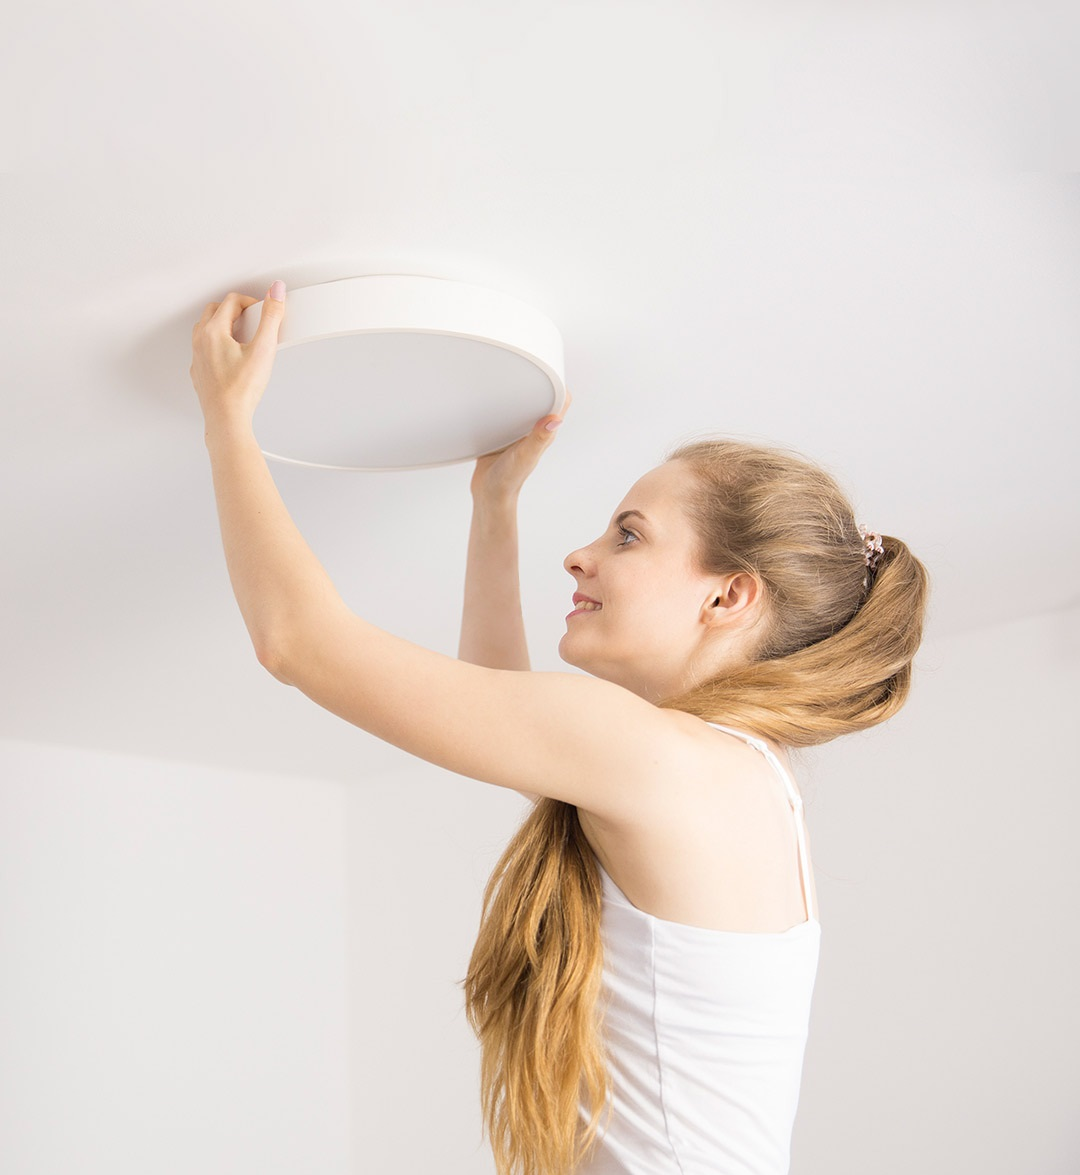 Yeelight Smart LED Ceiling Lamp цена и где купить